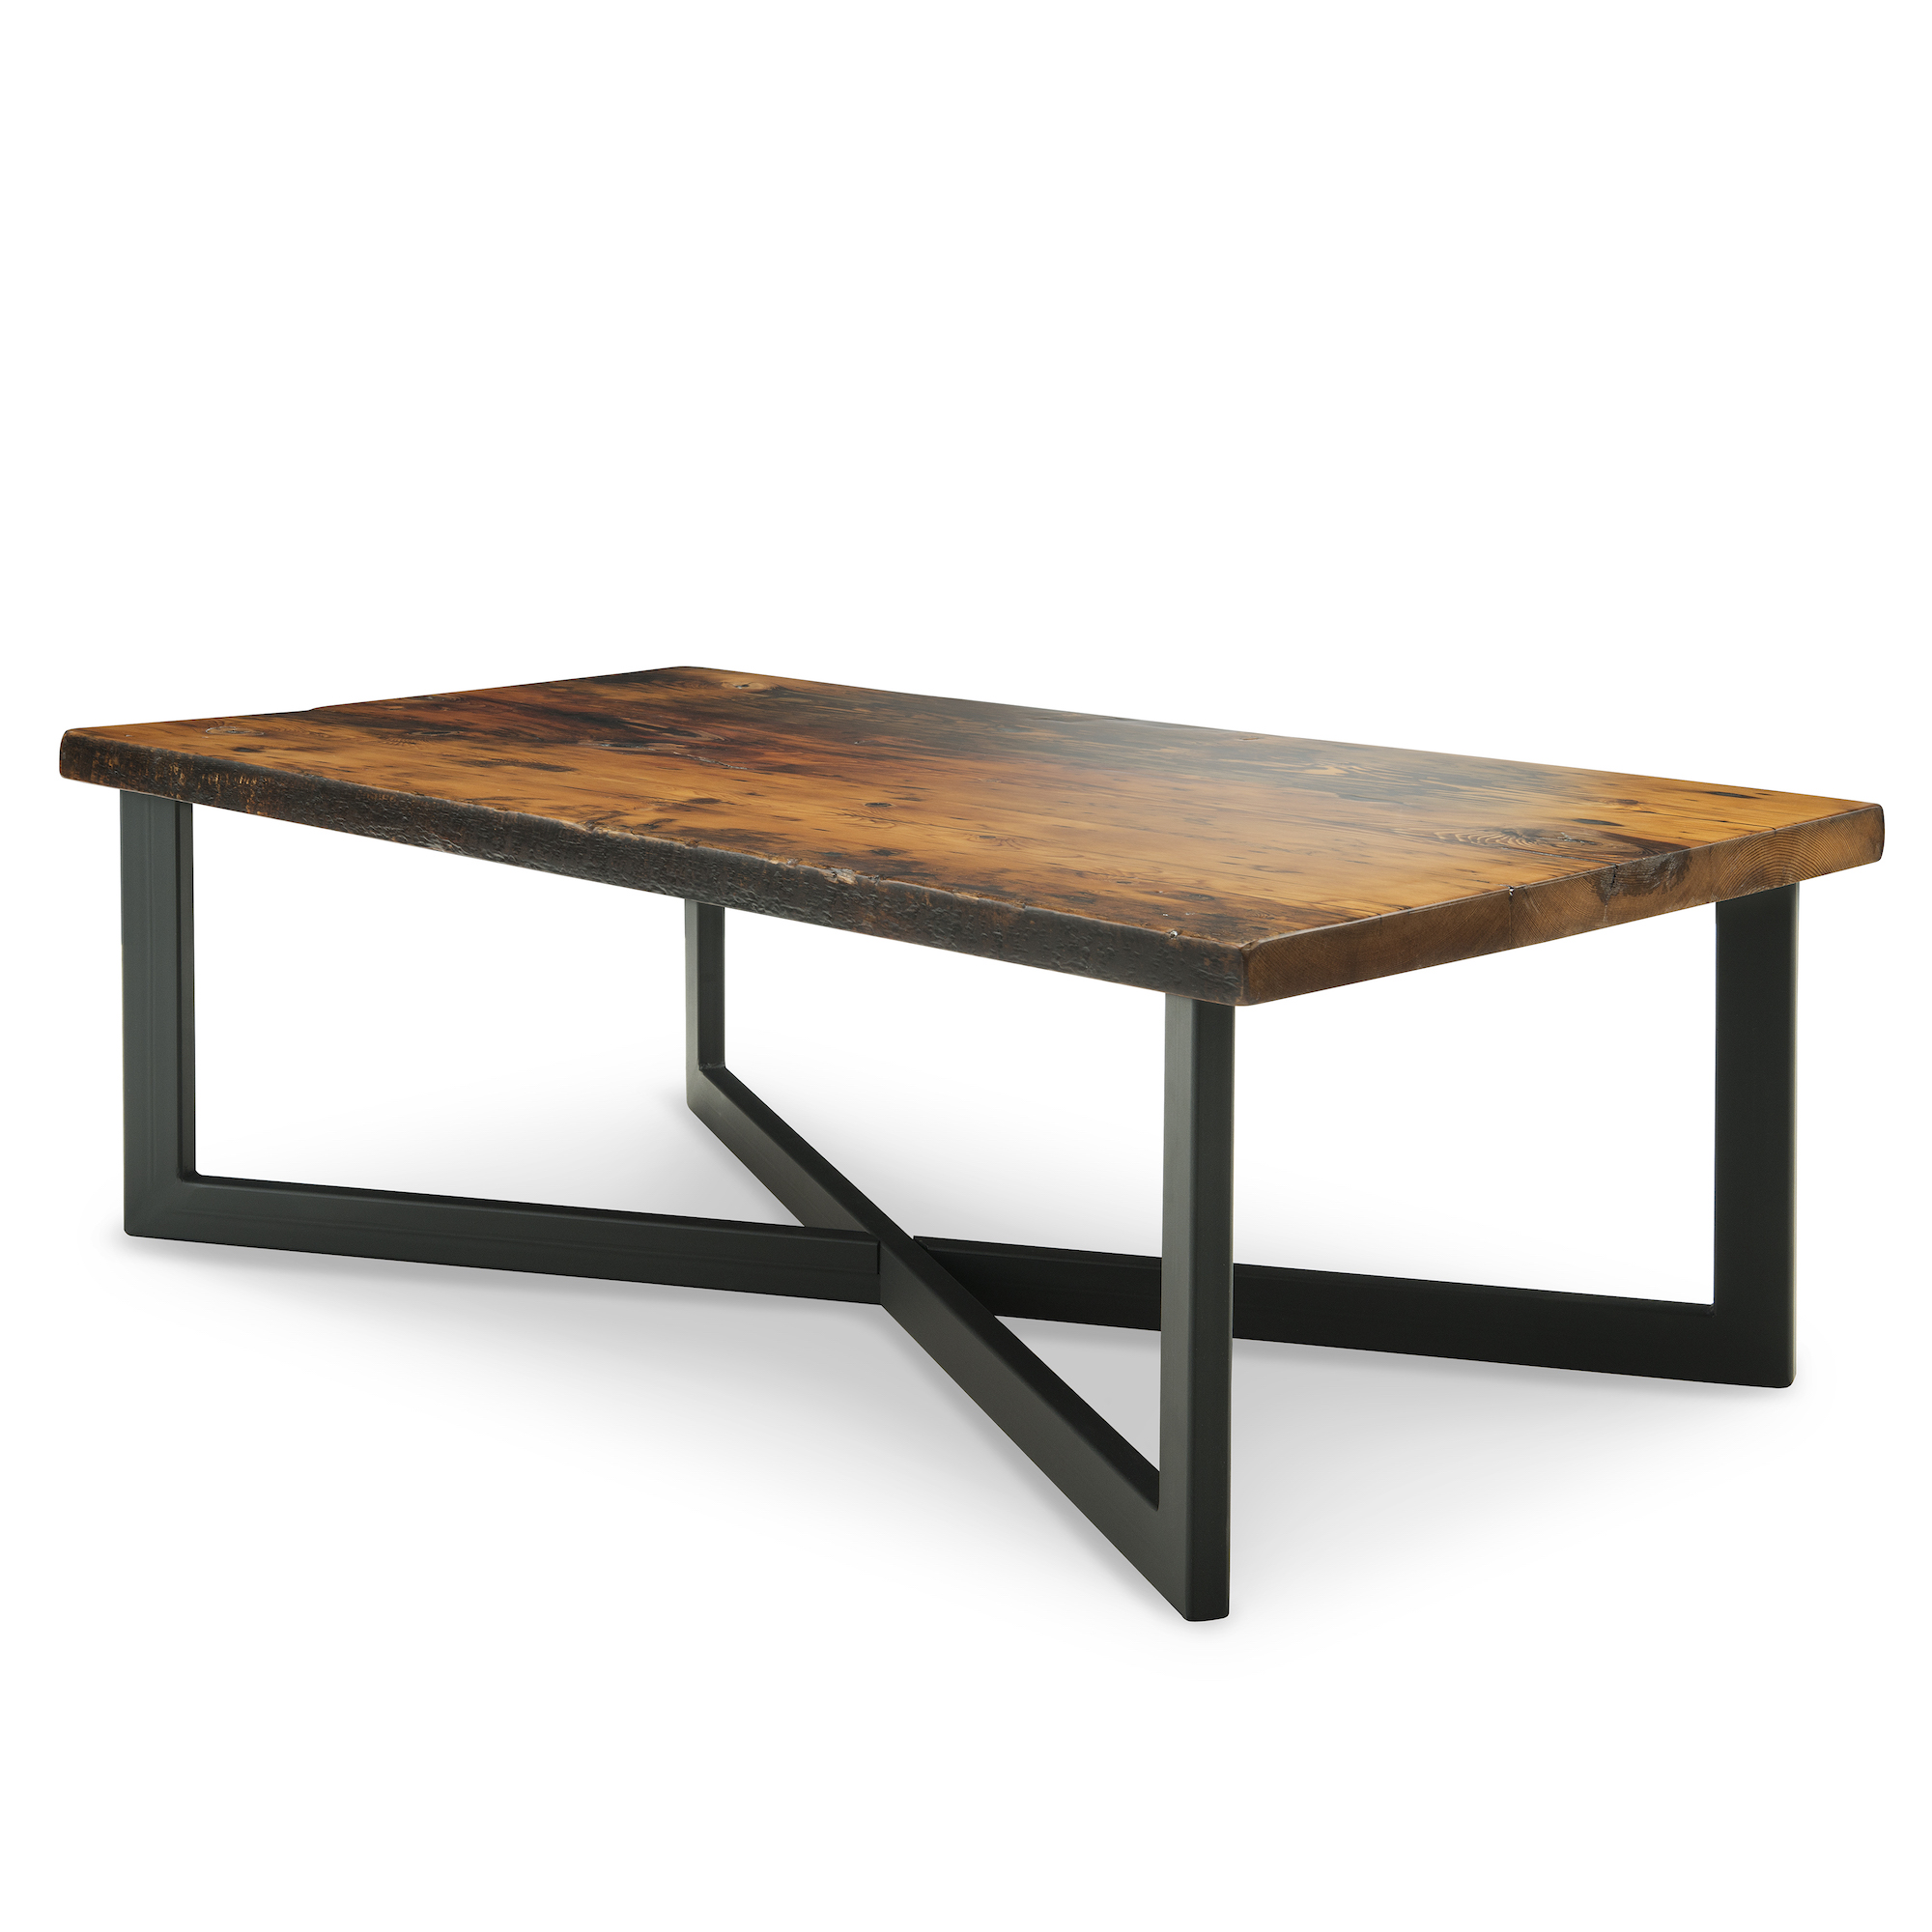 Portland_Coffee_Table_Angled-2-1.jpg